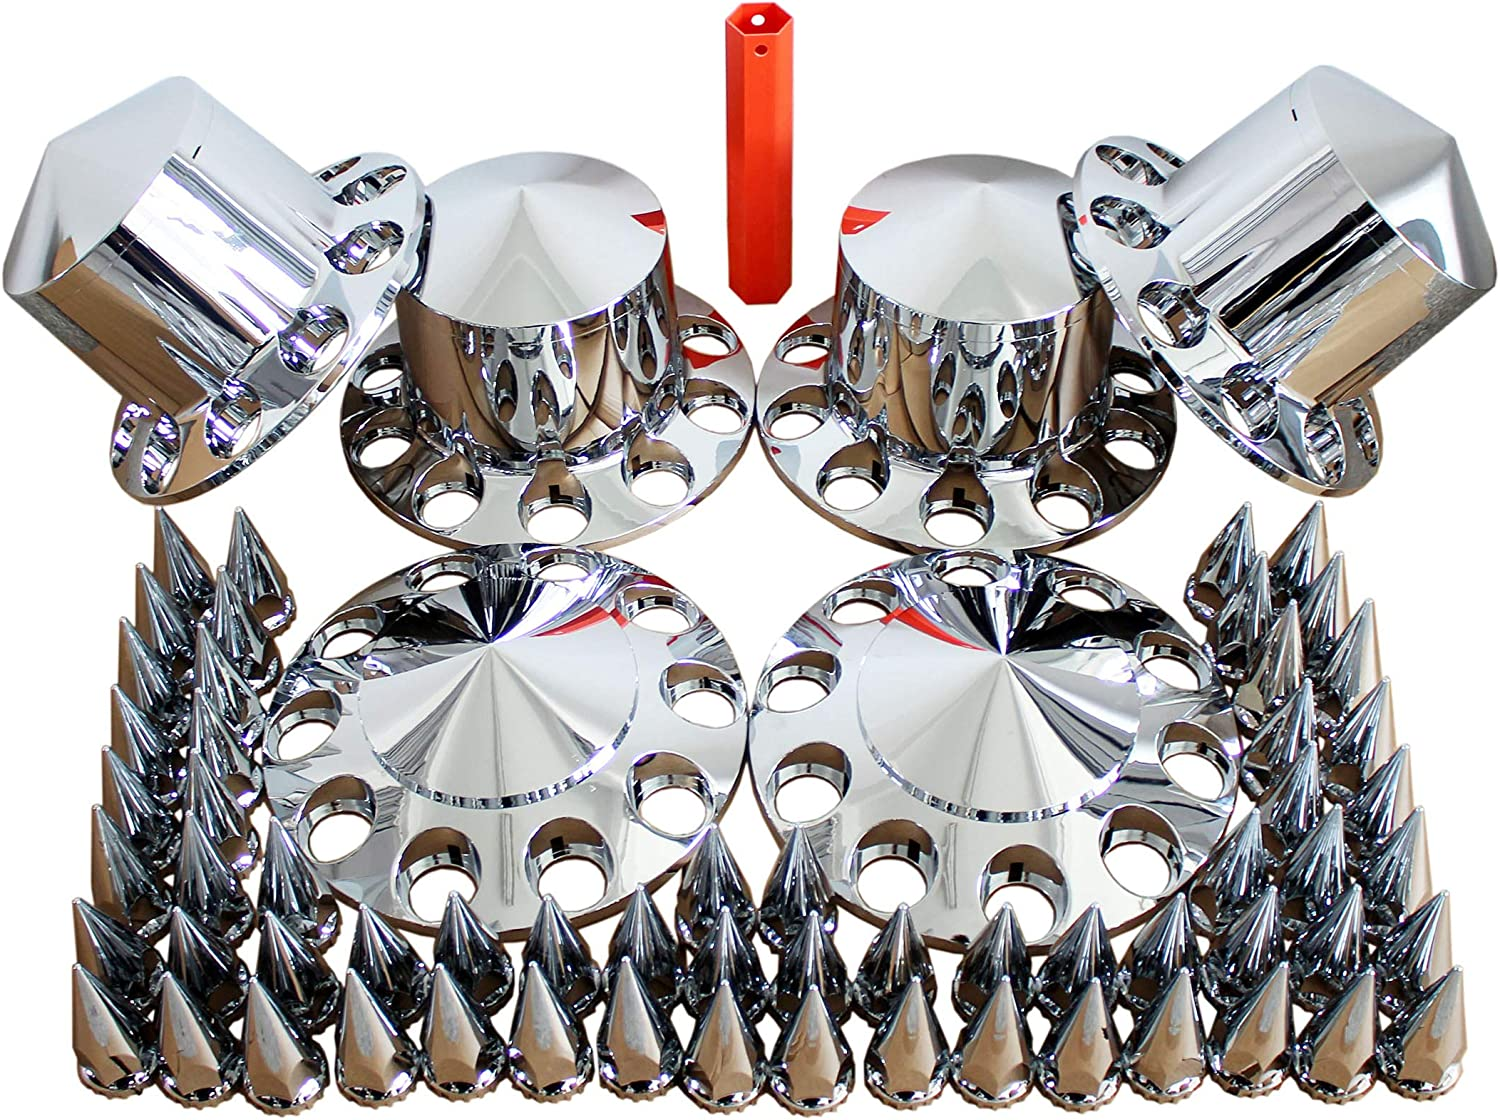 MRJLK Chrome ABS Complete Axle Sales Cover Hub Caps Set 33mm and with Courier shipping free